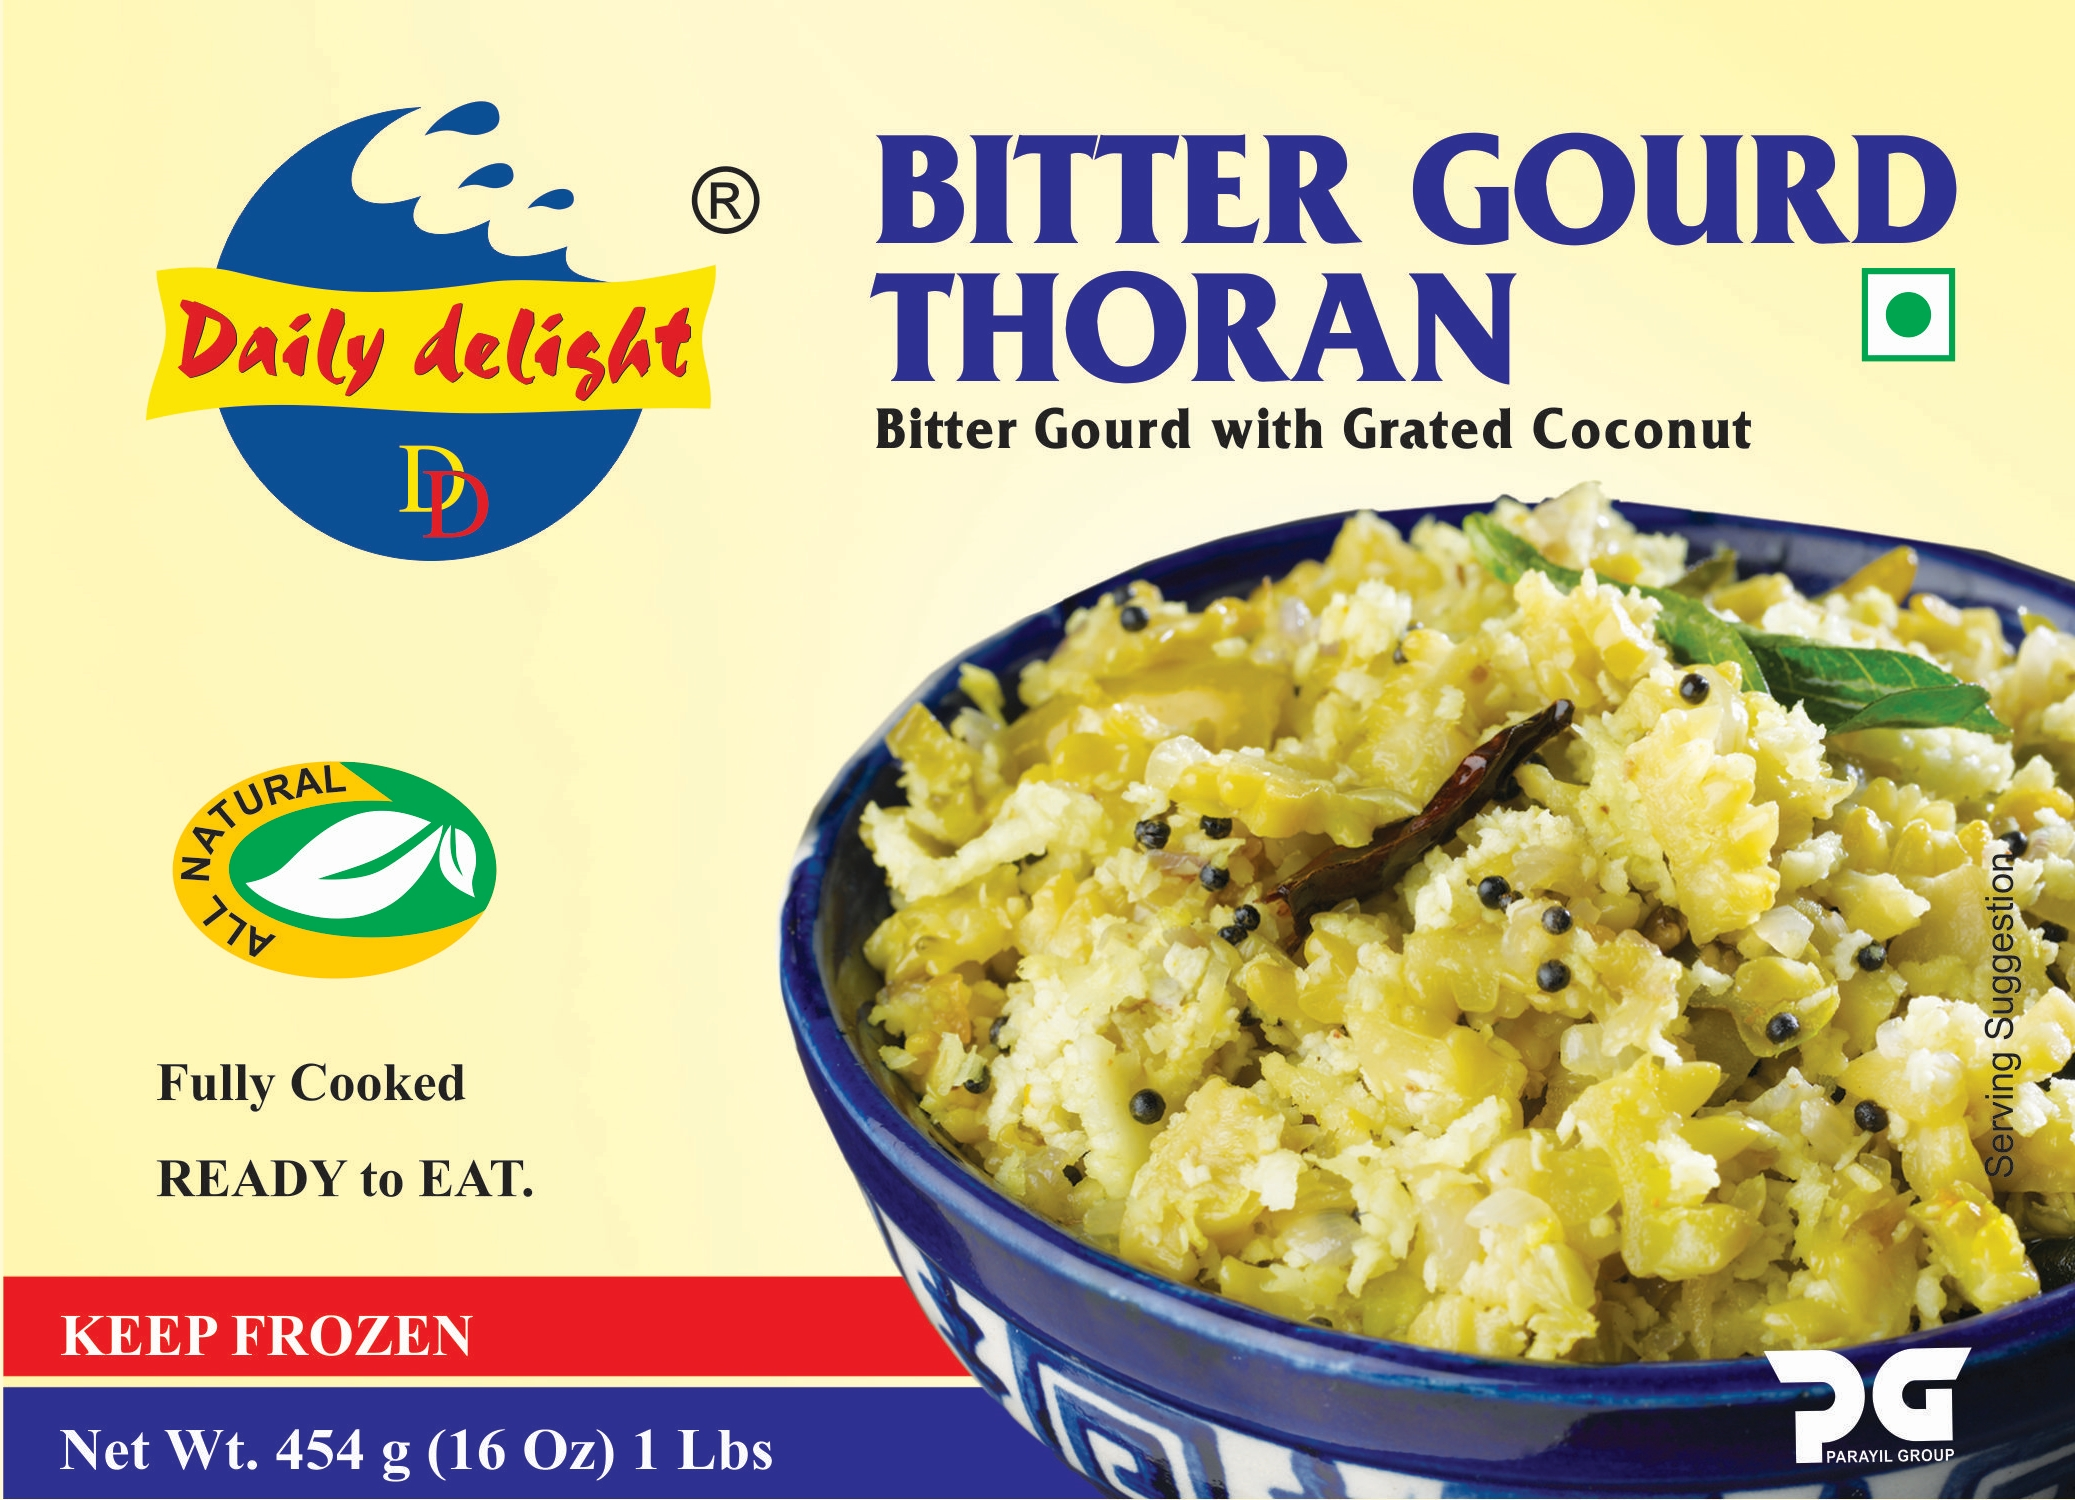 Daily Delight Bitter Gourd Thoran